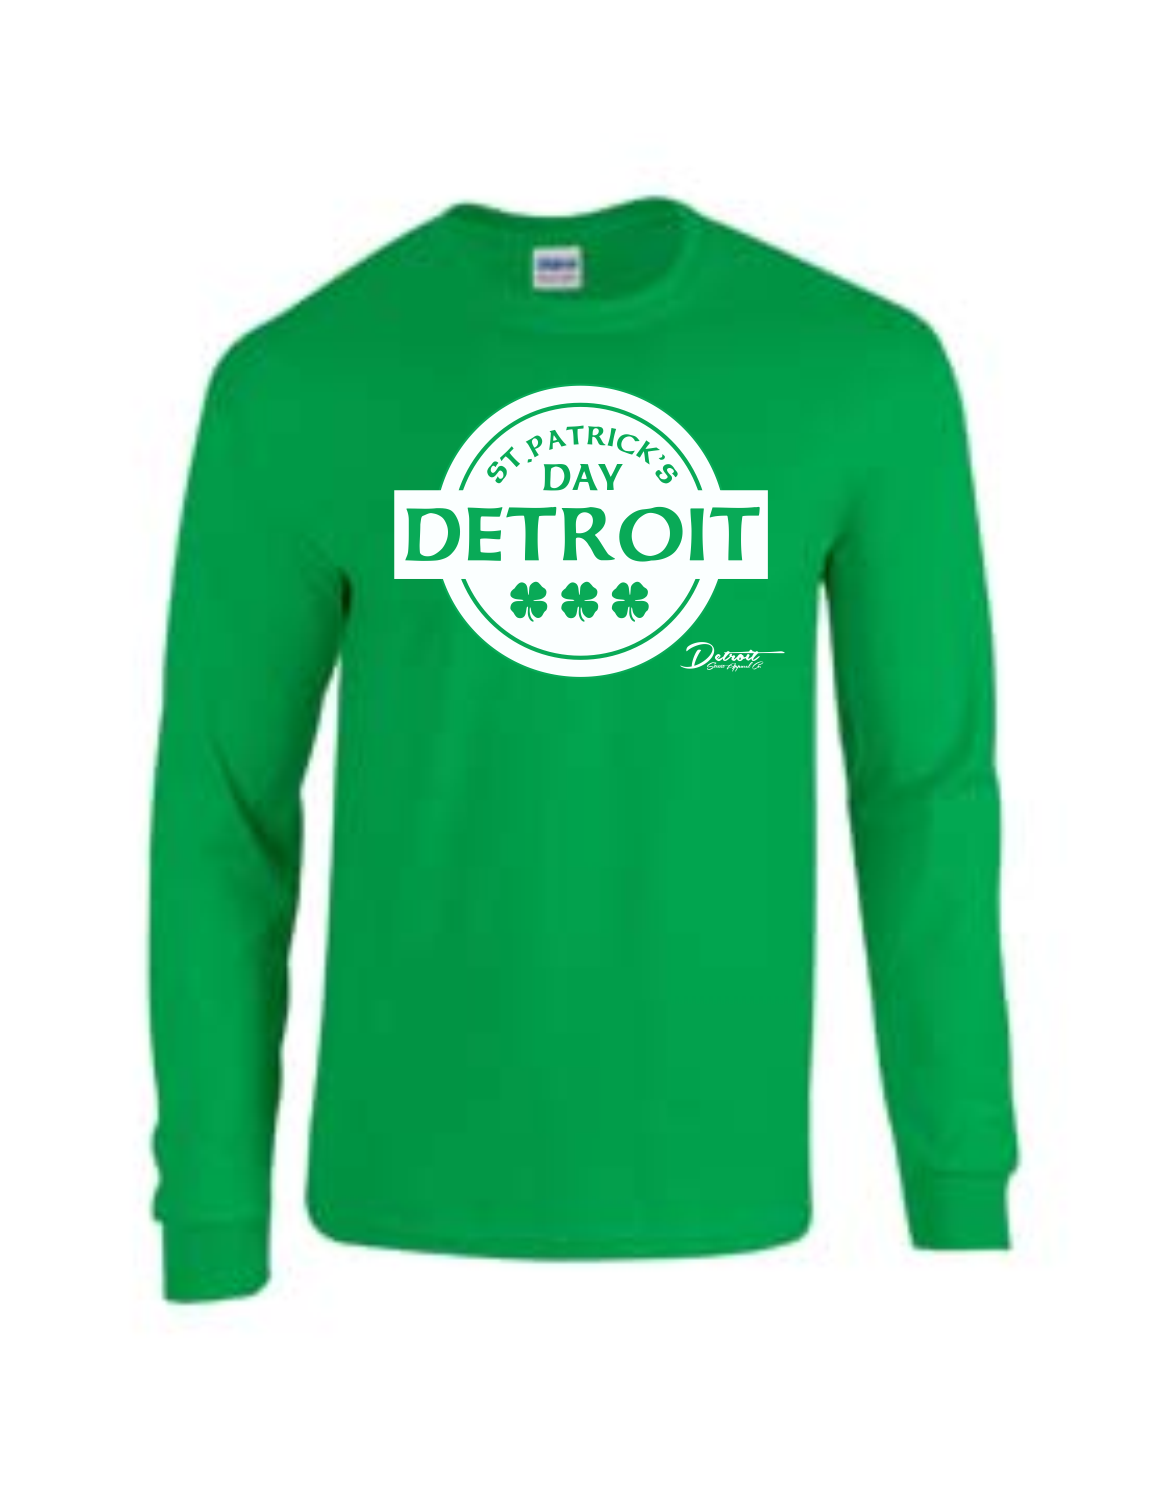 Detroit Street Apparel CO. 2015 St. Patrick's Day  T-Shirt